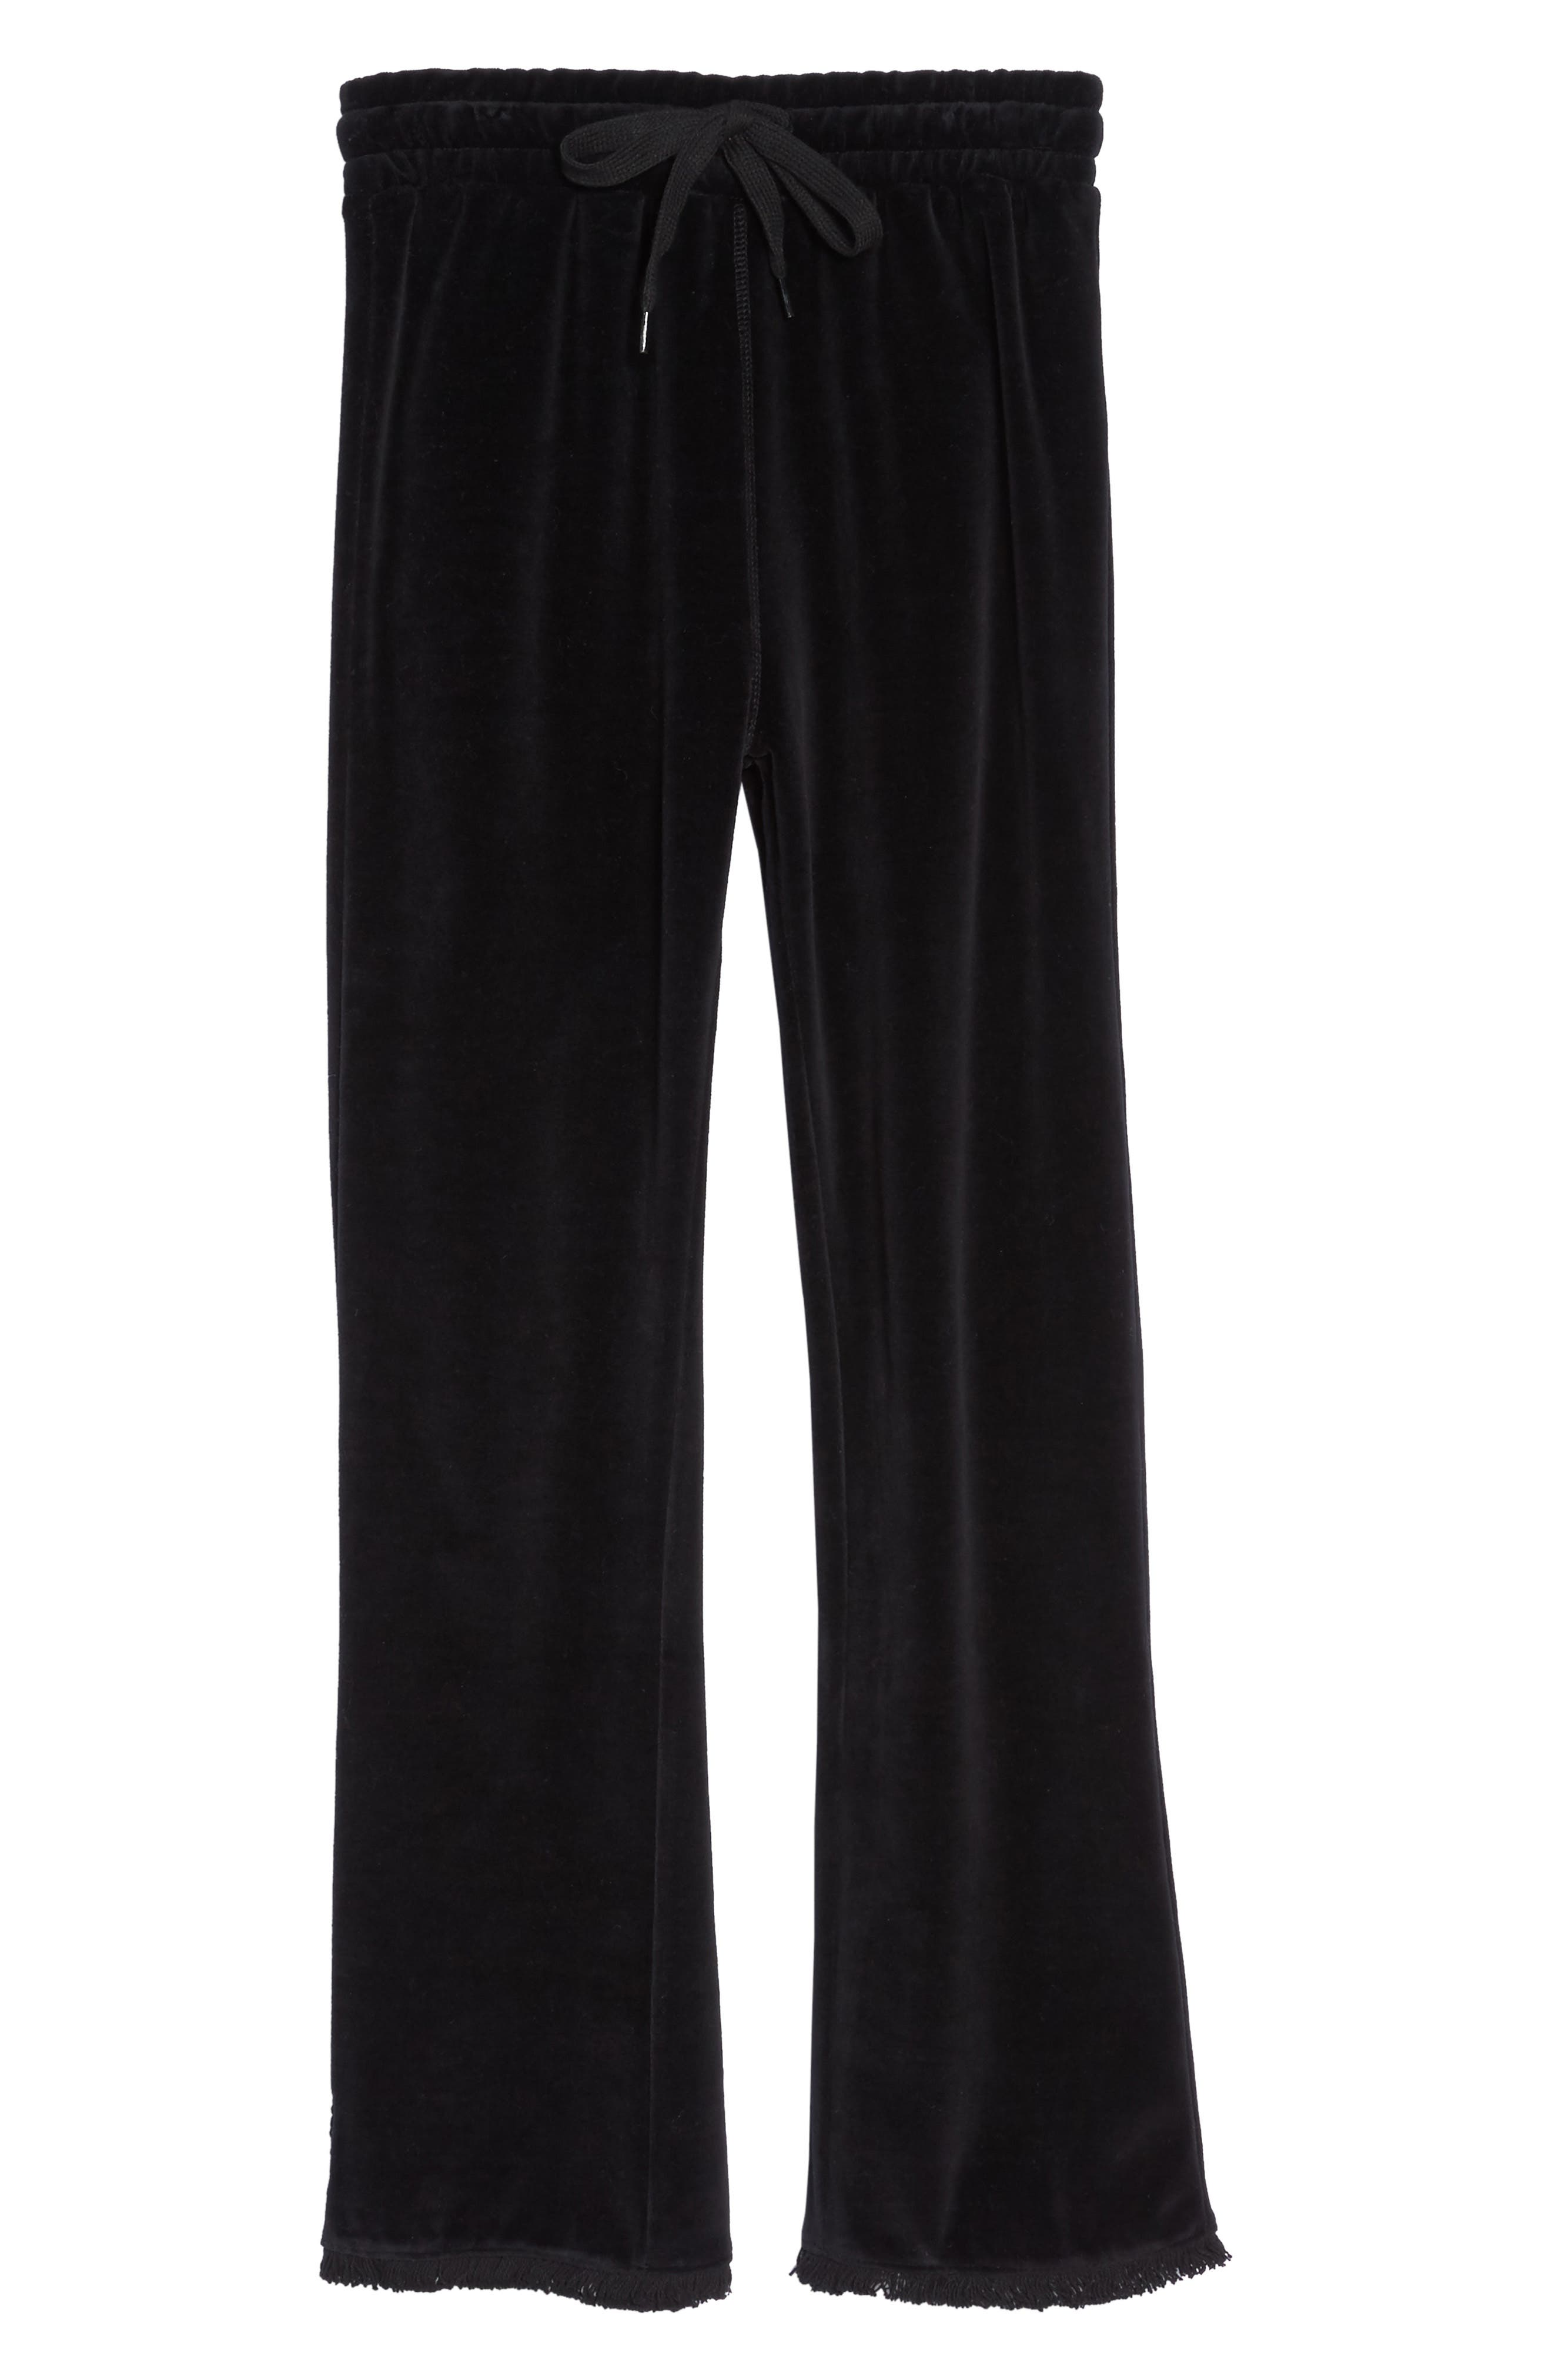 Crop Velour Lounge Pants,                             Alternate thumbnail 6, color,                             001